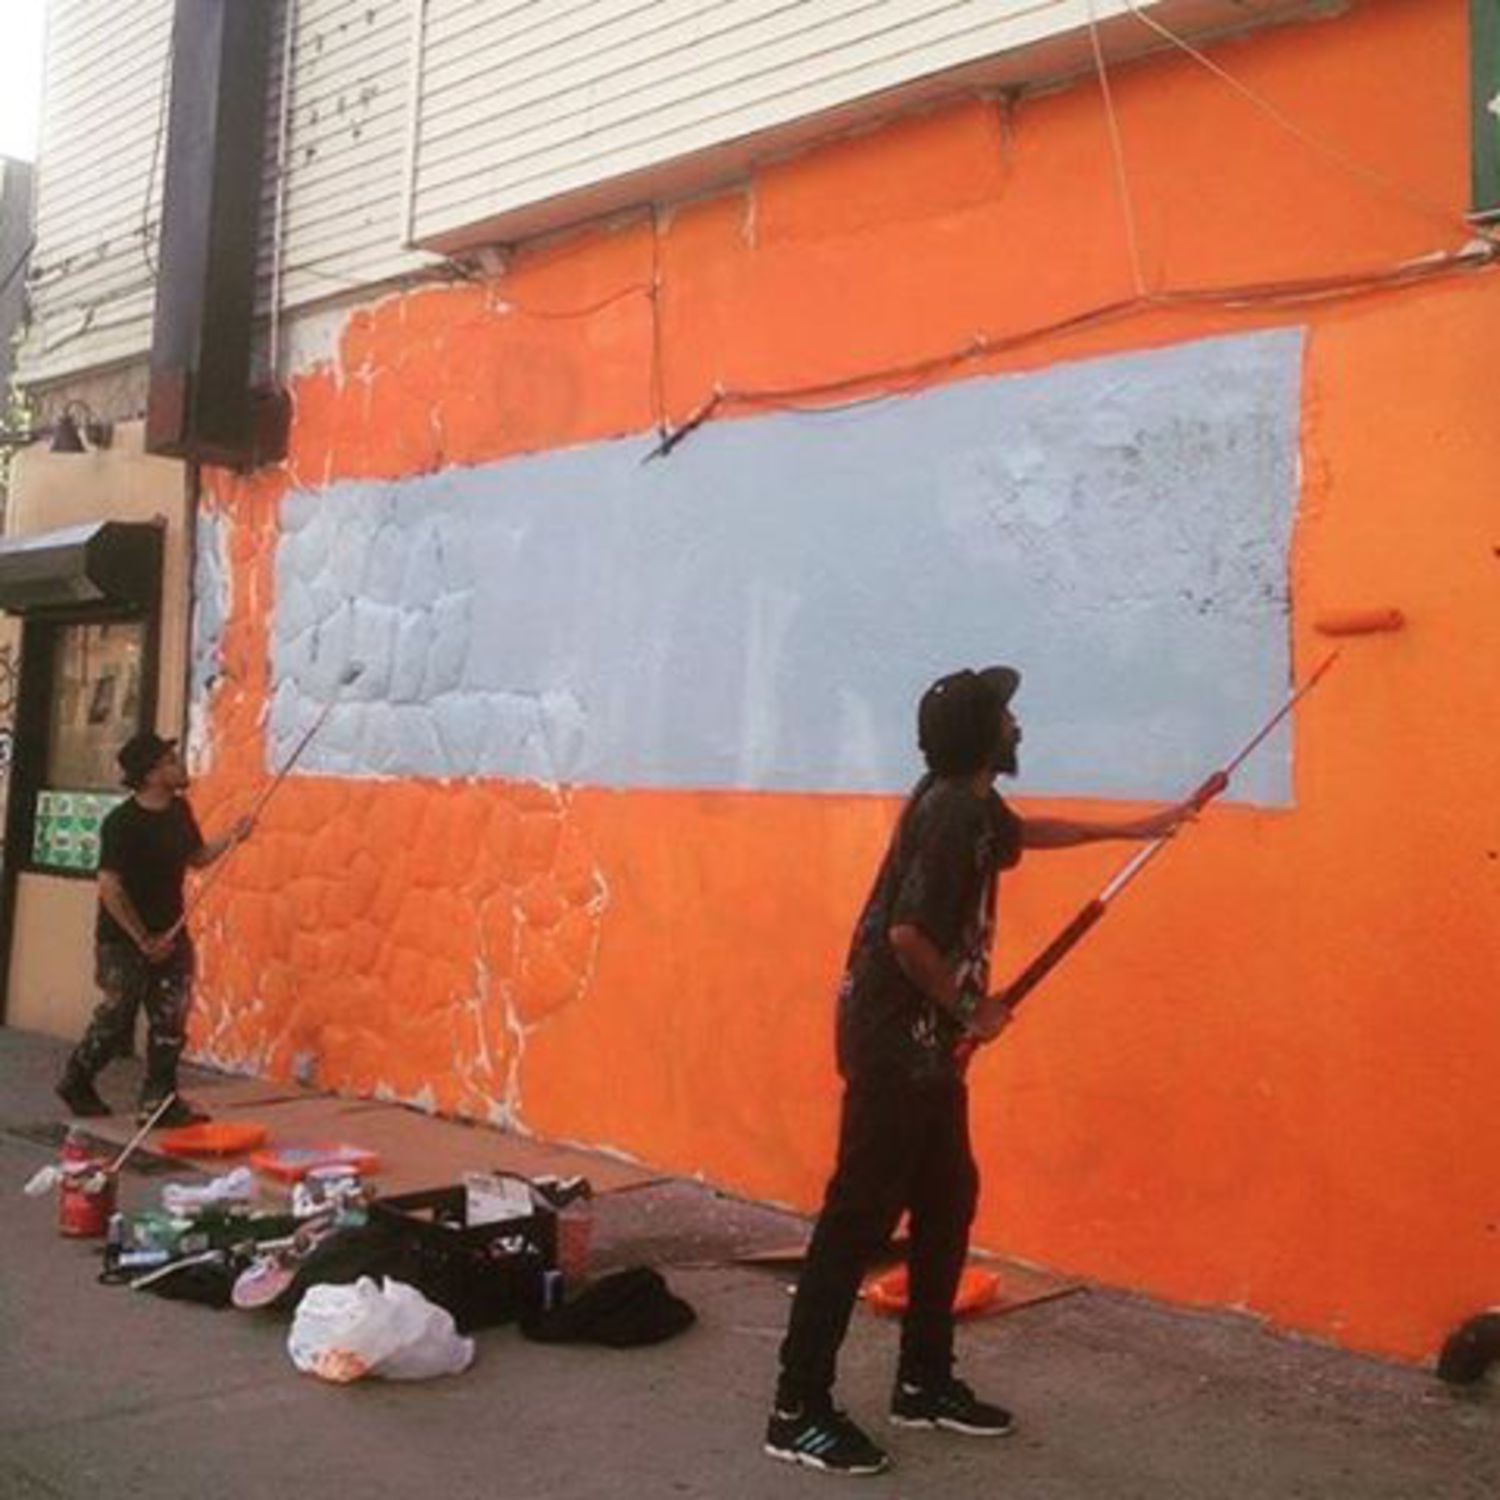 Me and the homie @benrobey doing some prep work for this commish in Bushwick